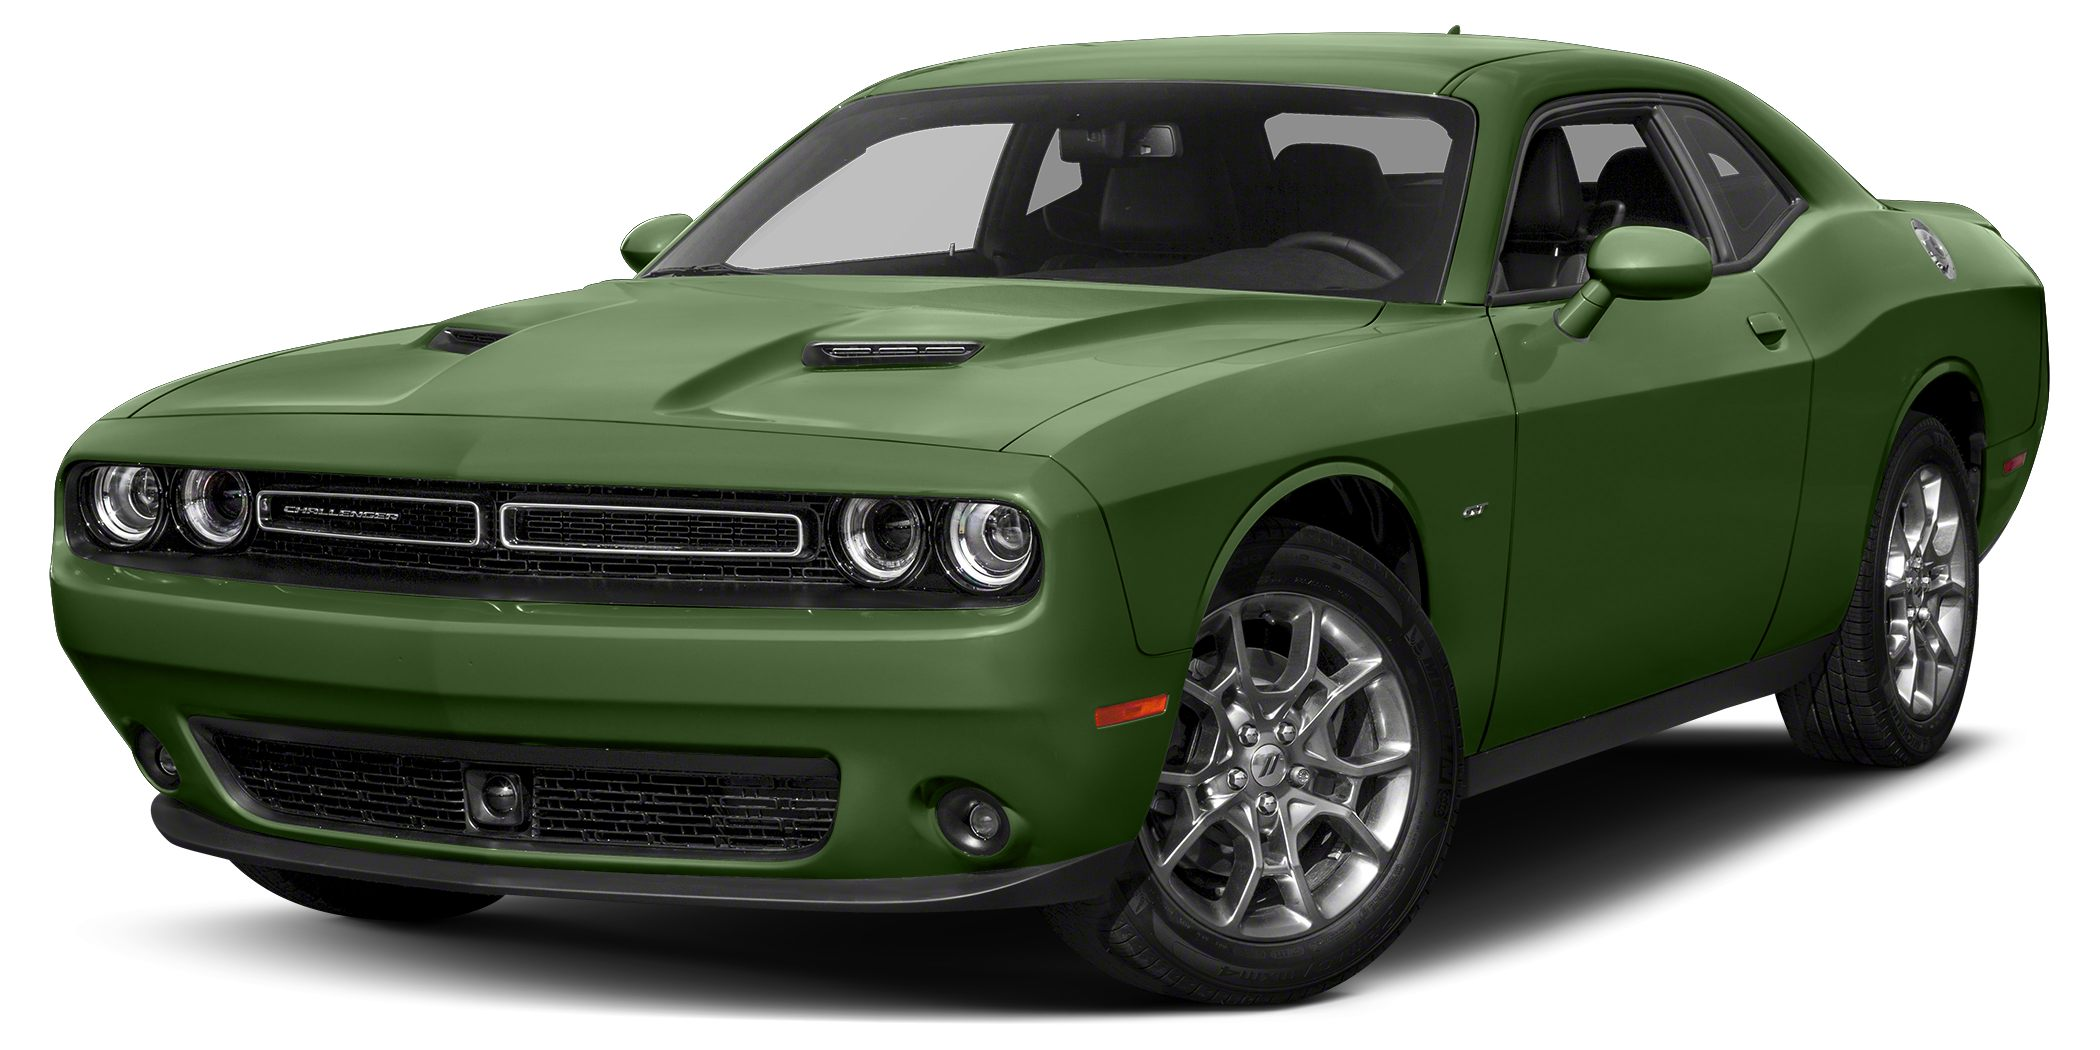 2018 Dodge Challenger GT SPECIAL ONLINE PRICE INCLUDES 3250 IN REBATES THAT ALL CUSTOMERS QUALIF